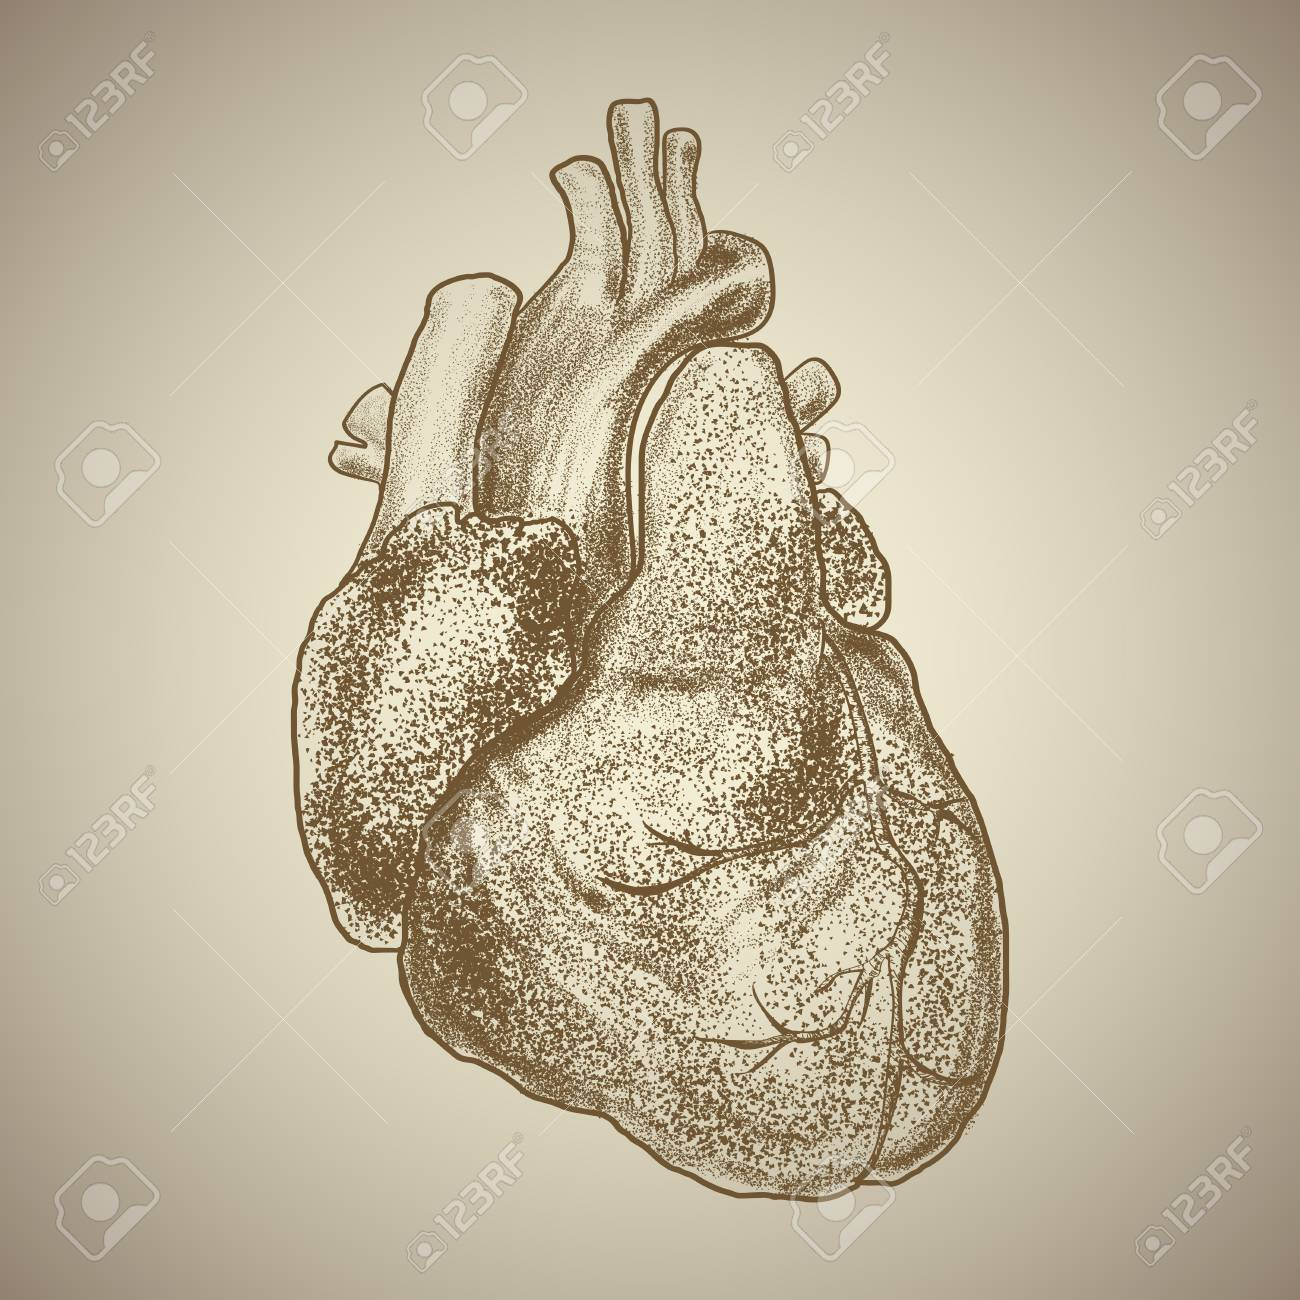 Human Heart. Exterior Appearance With Vessels And Other Anatomical Elements  Stock Vector   84445533